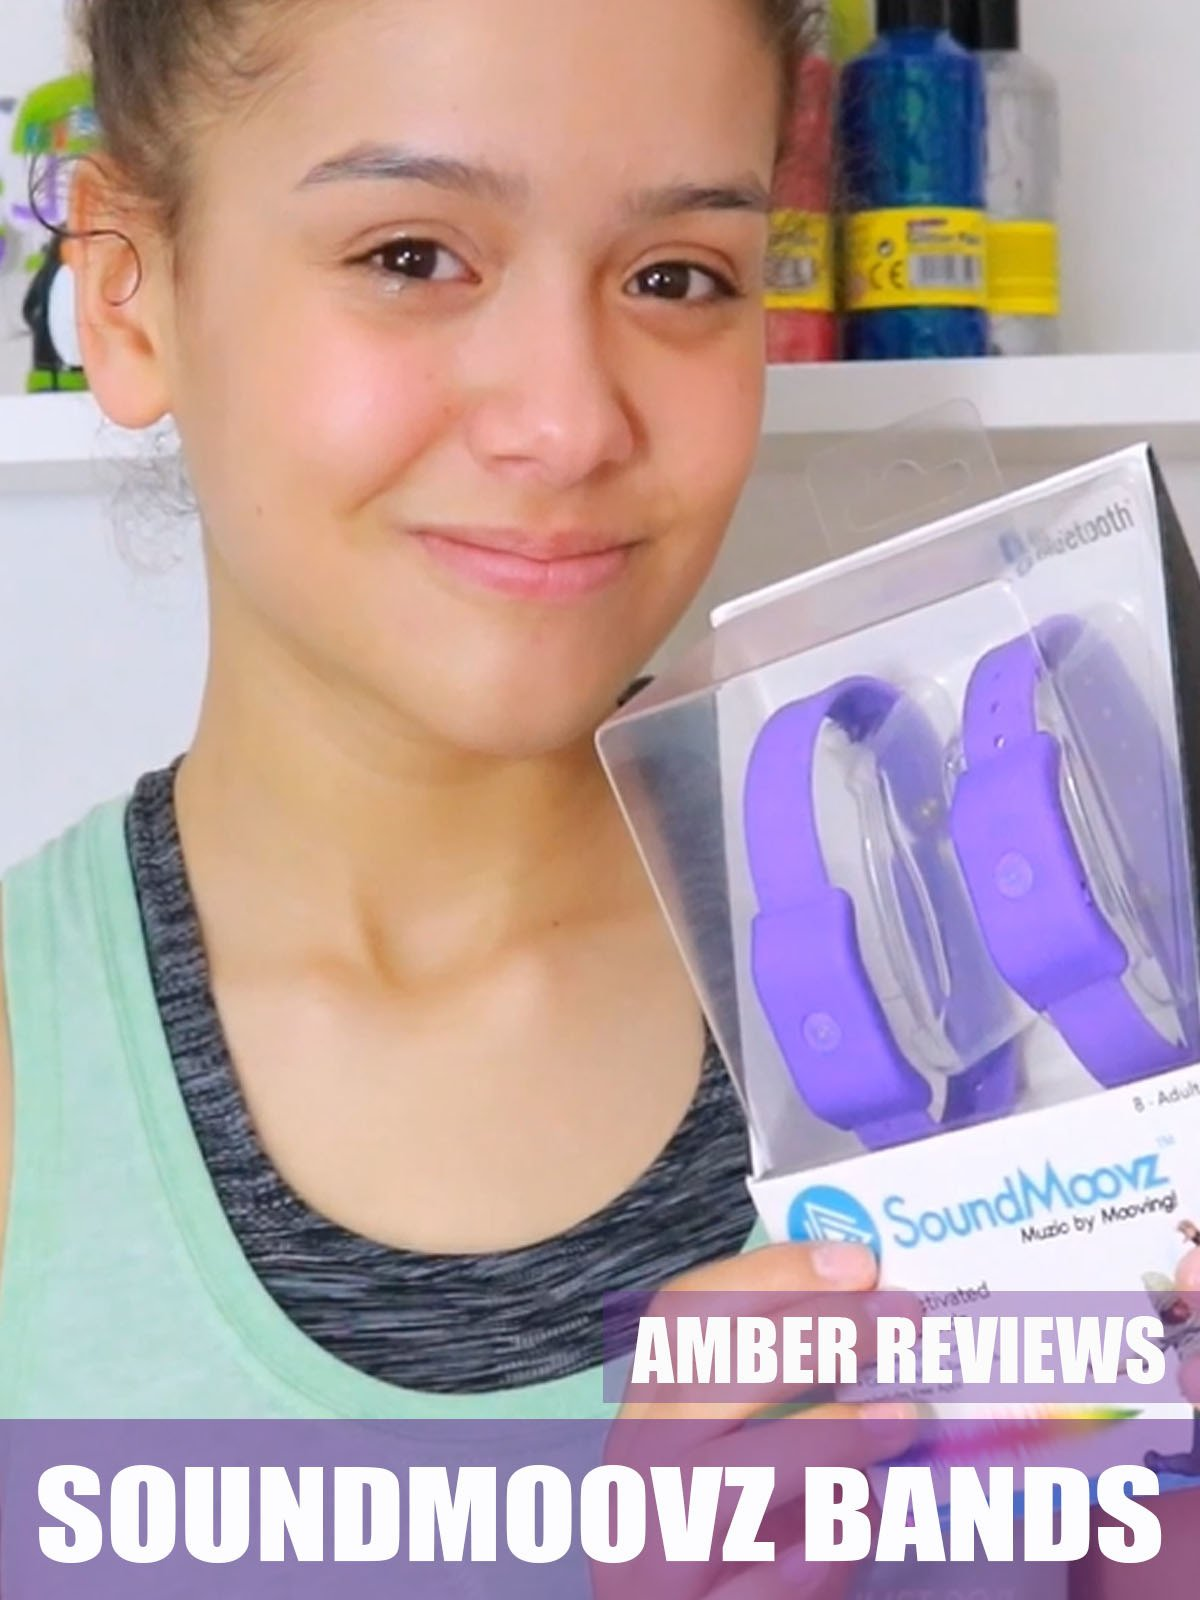 Amber Reviews Soundmoovz Bands